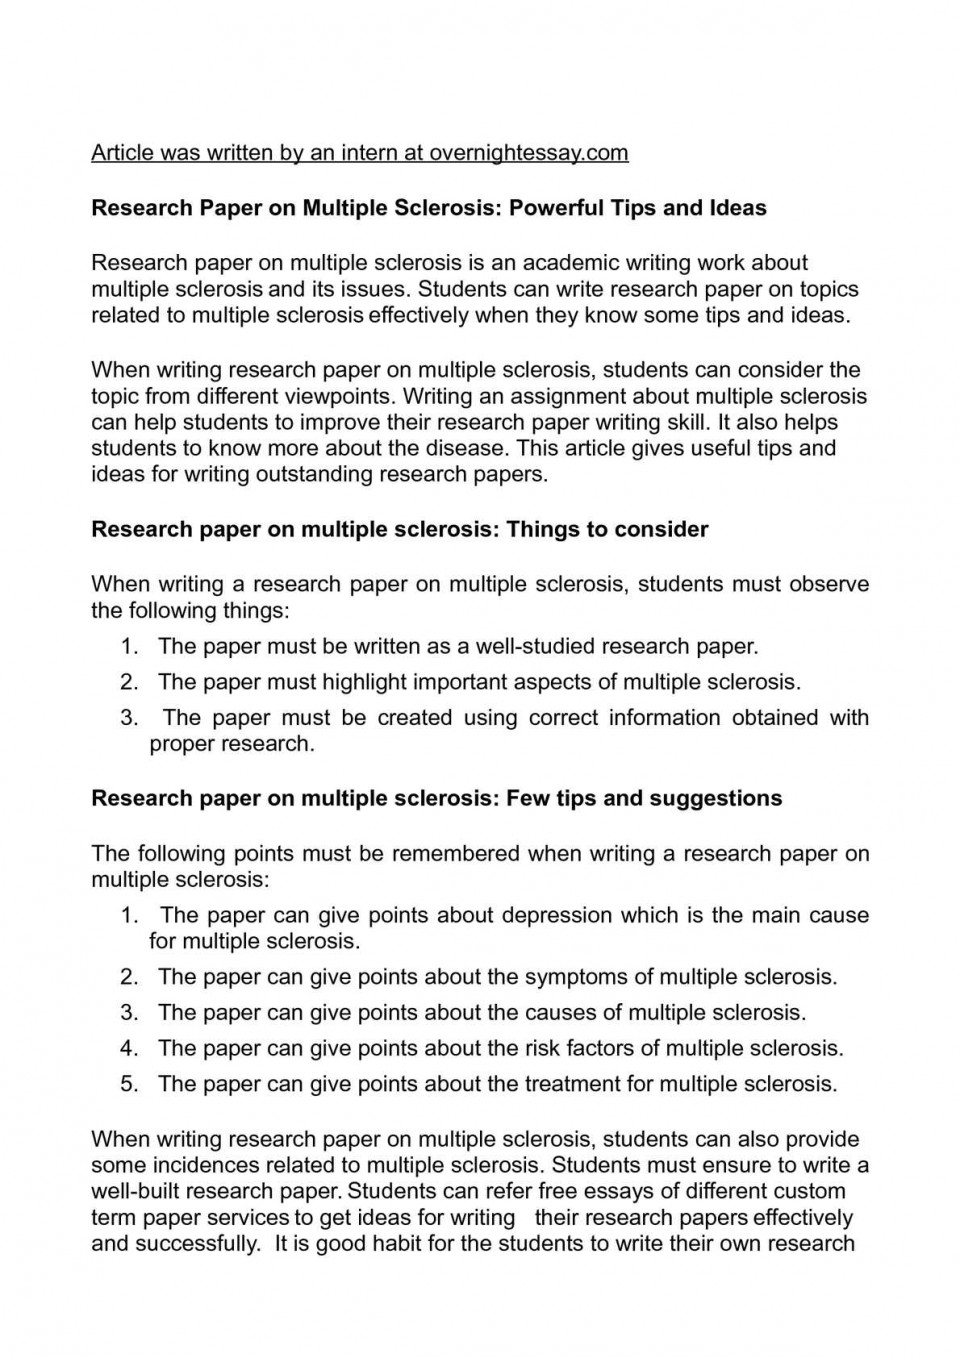 015 Research Paper How To Write Breathtaking A Conclusion For Mla An Abstract Examples Introduction 960